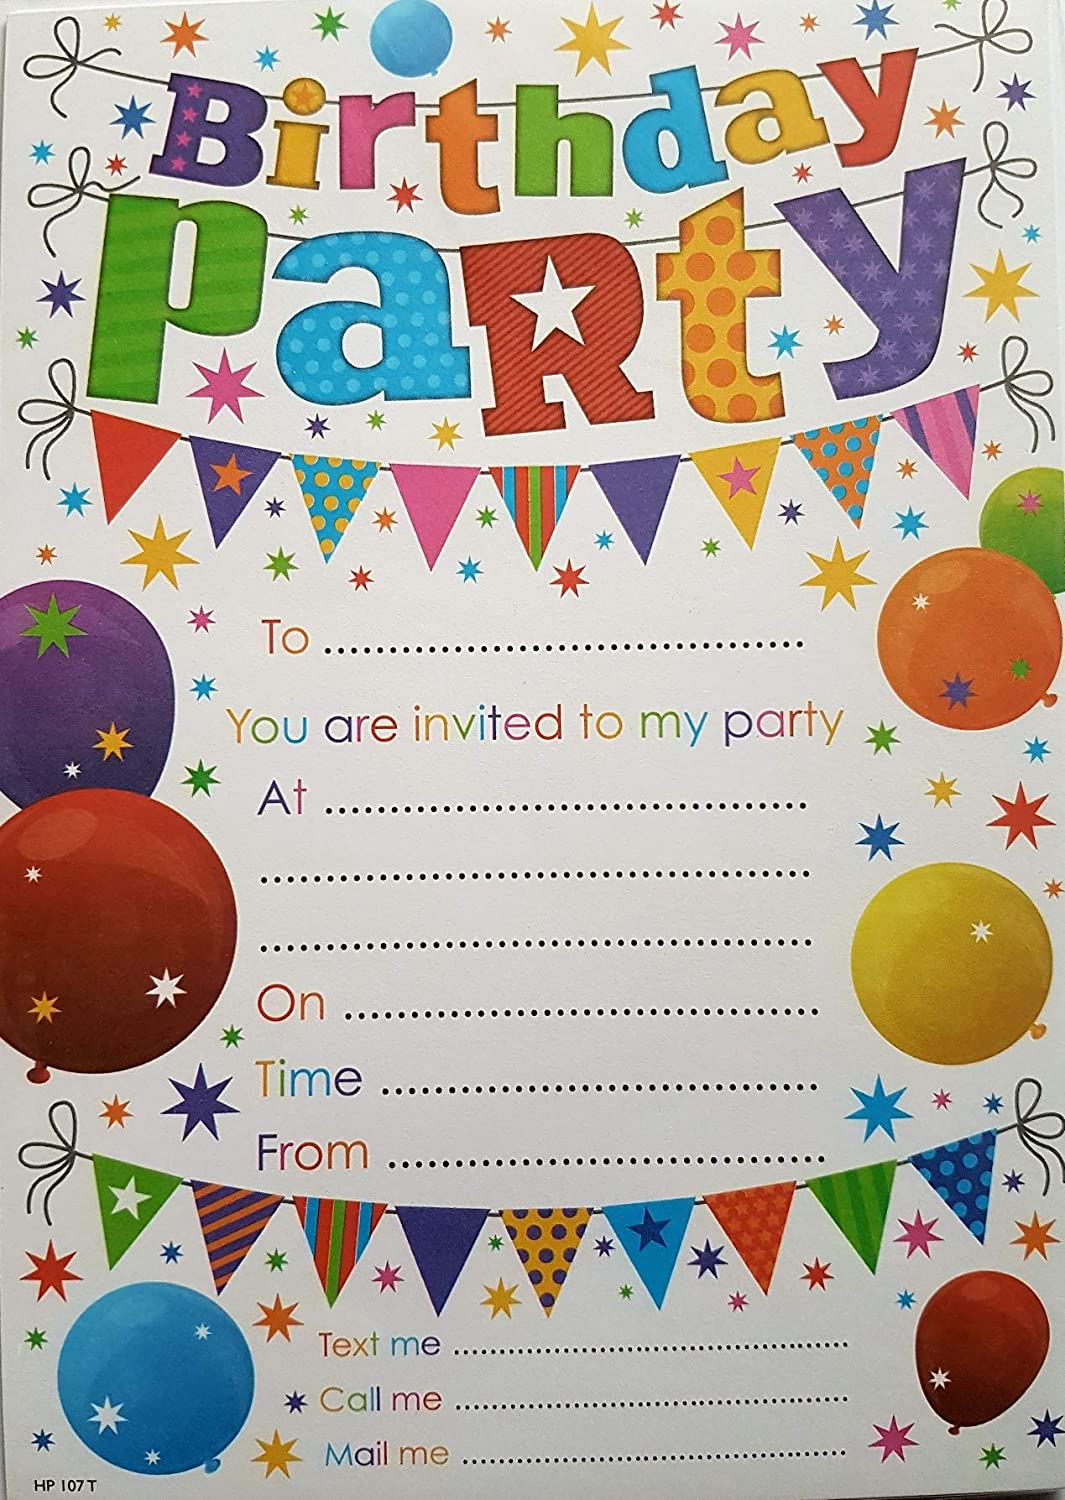 Party Invitations With Balloon Design Pack Of 20 Invites